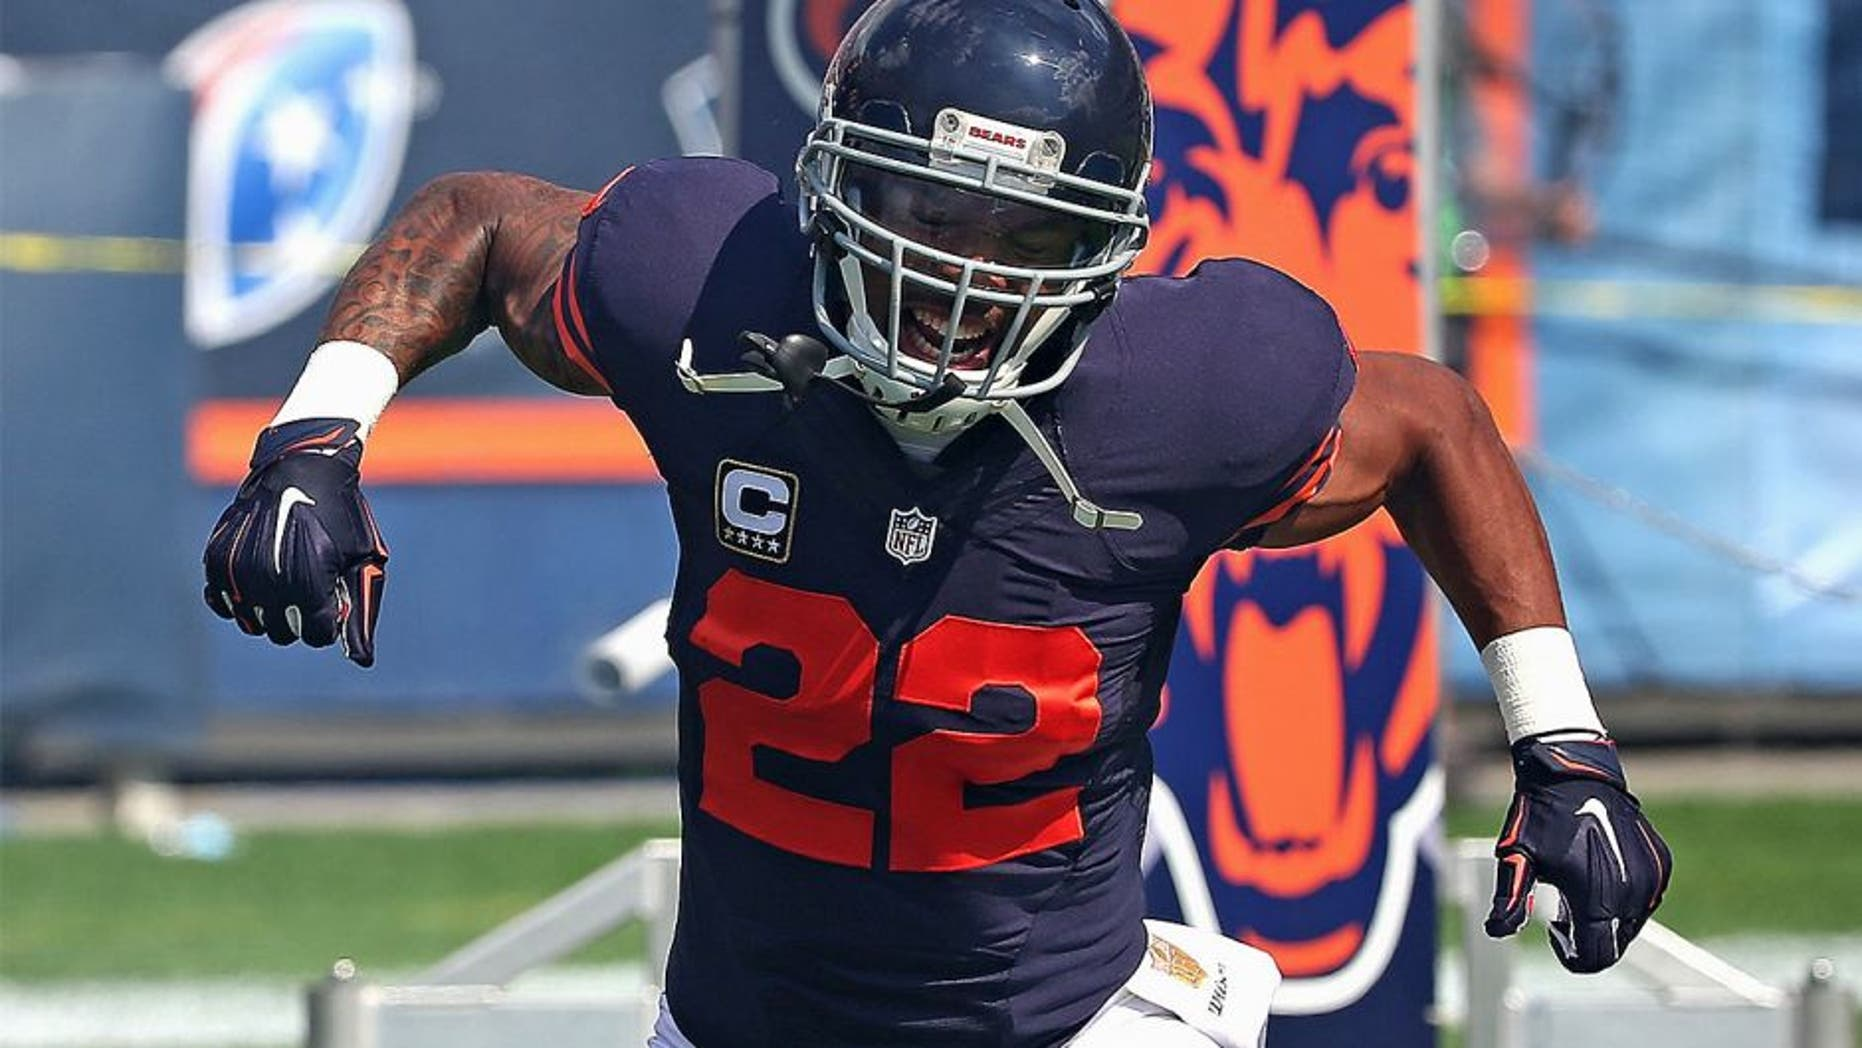 CHICAGO, IL - SEPTEMBER 13: Matt Forte #22 of the Chicago Bears yells during player introductions before a game against the Green Bay Packers at Soldier Field on September 13, 2015 in Chicago, Illinois. The Packers defeated the Bears 31-23. (Photo by Jonathan Daniel/Getty Images)